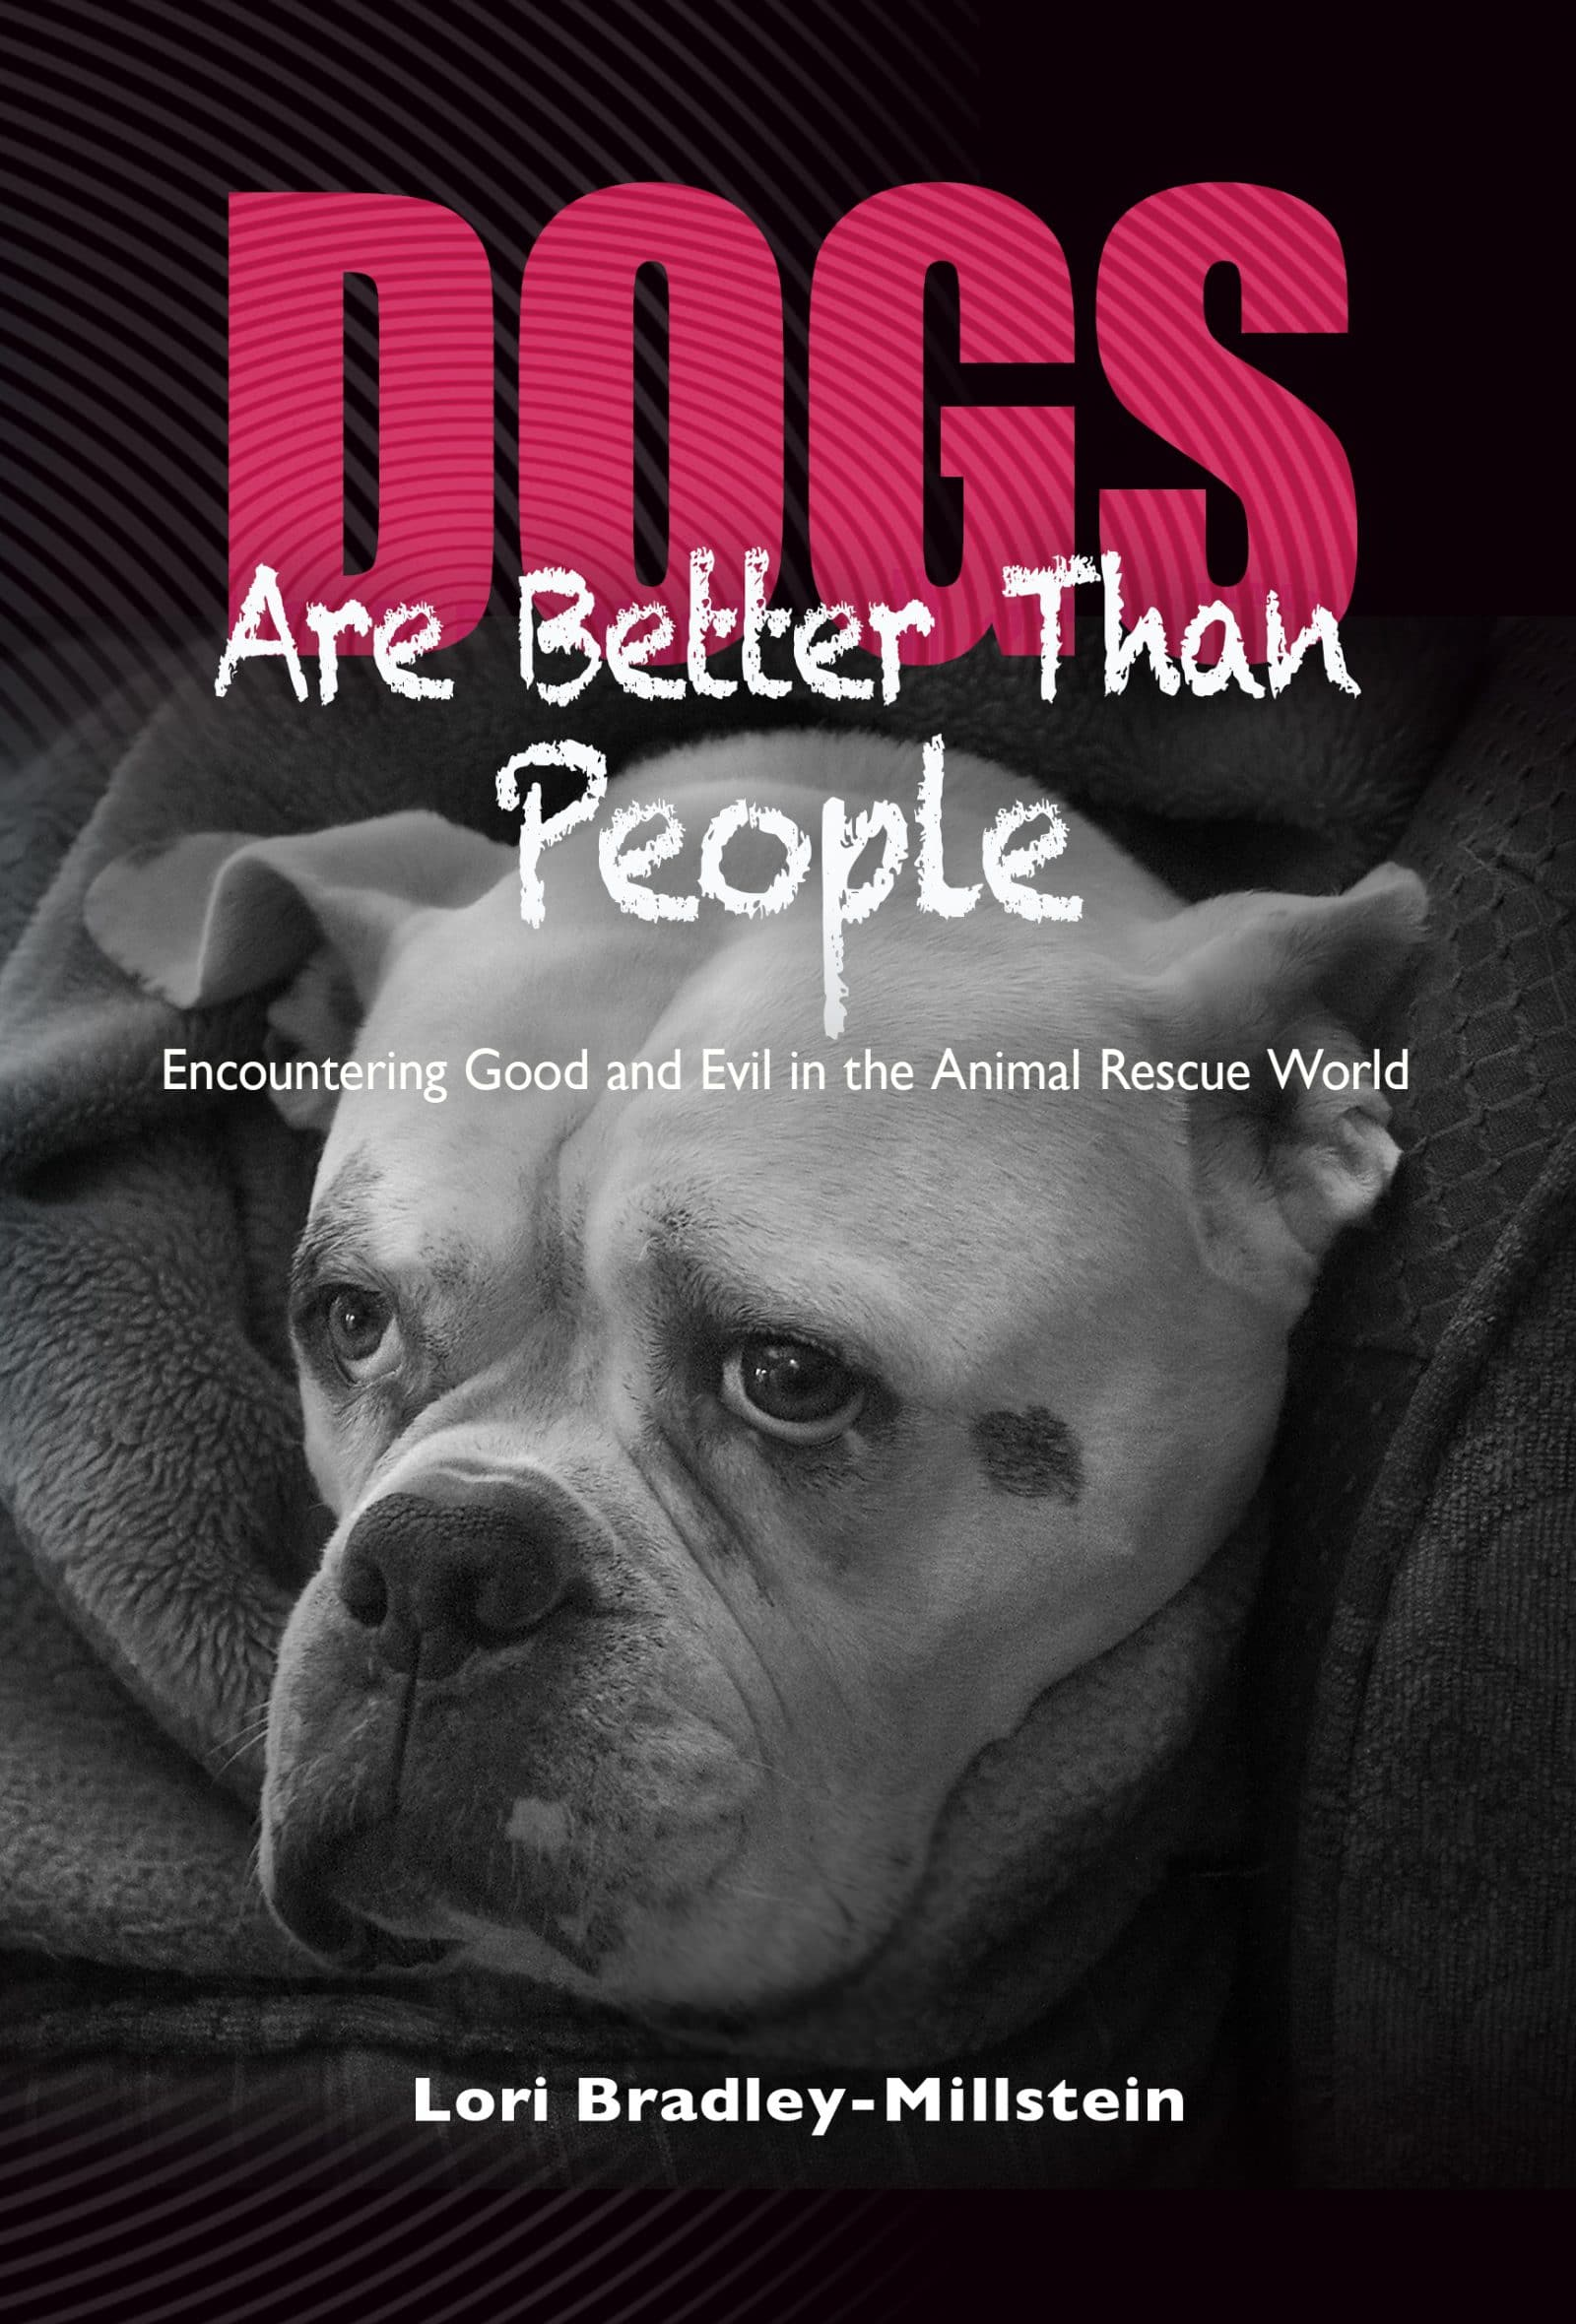 Dogs Are Better Than People: Encountering Good and Evil in the Animal Rescue World.